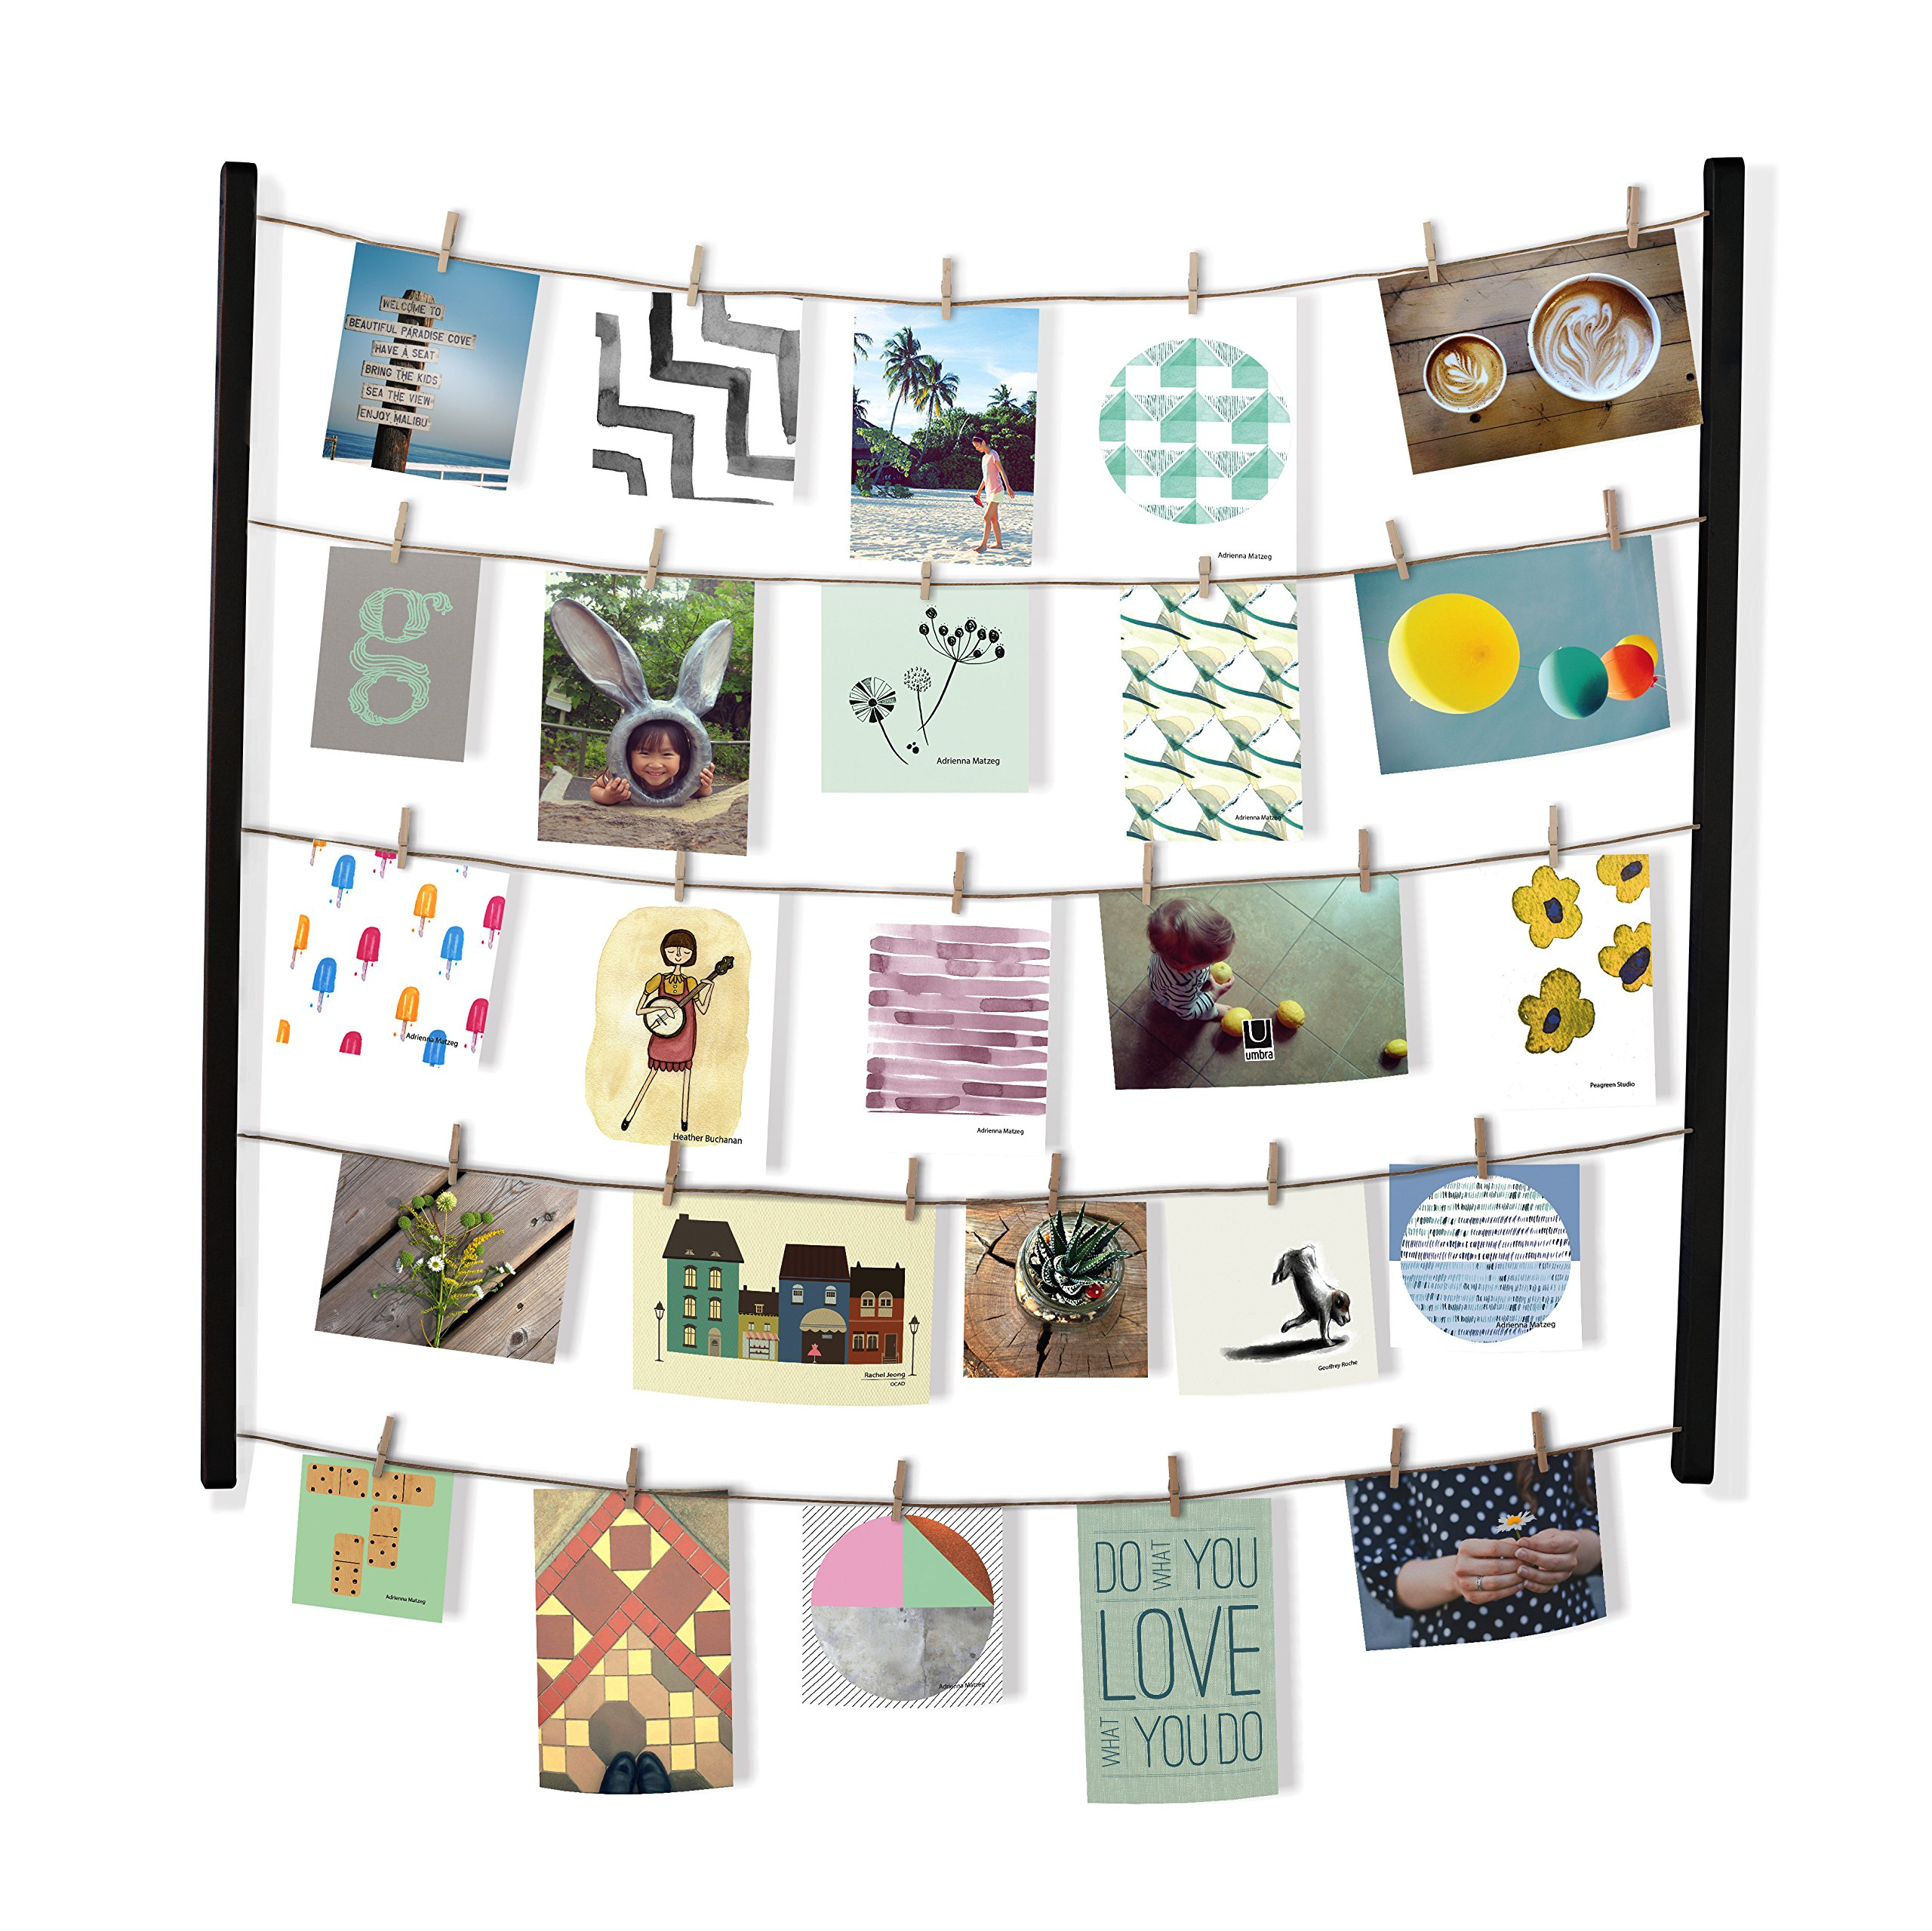 Umbra Hangit Photo Display - DIY Picture Frames Collage Set Includes Picture Hanging Wire Twine Cords, Natural Wood Wall Mounts and Clothespin Clips for Hanging Photos, Prints and Artwork (Black) by Umbra